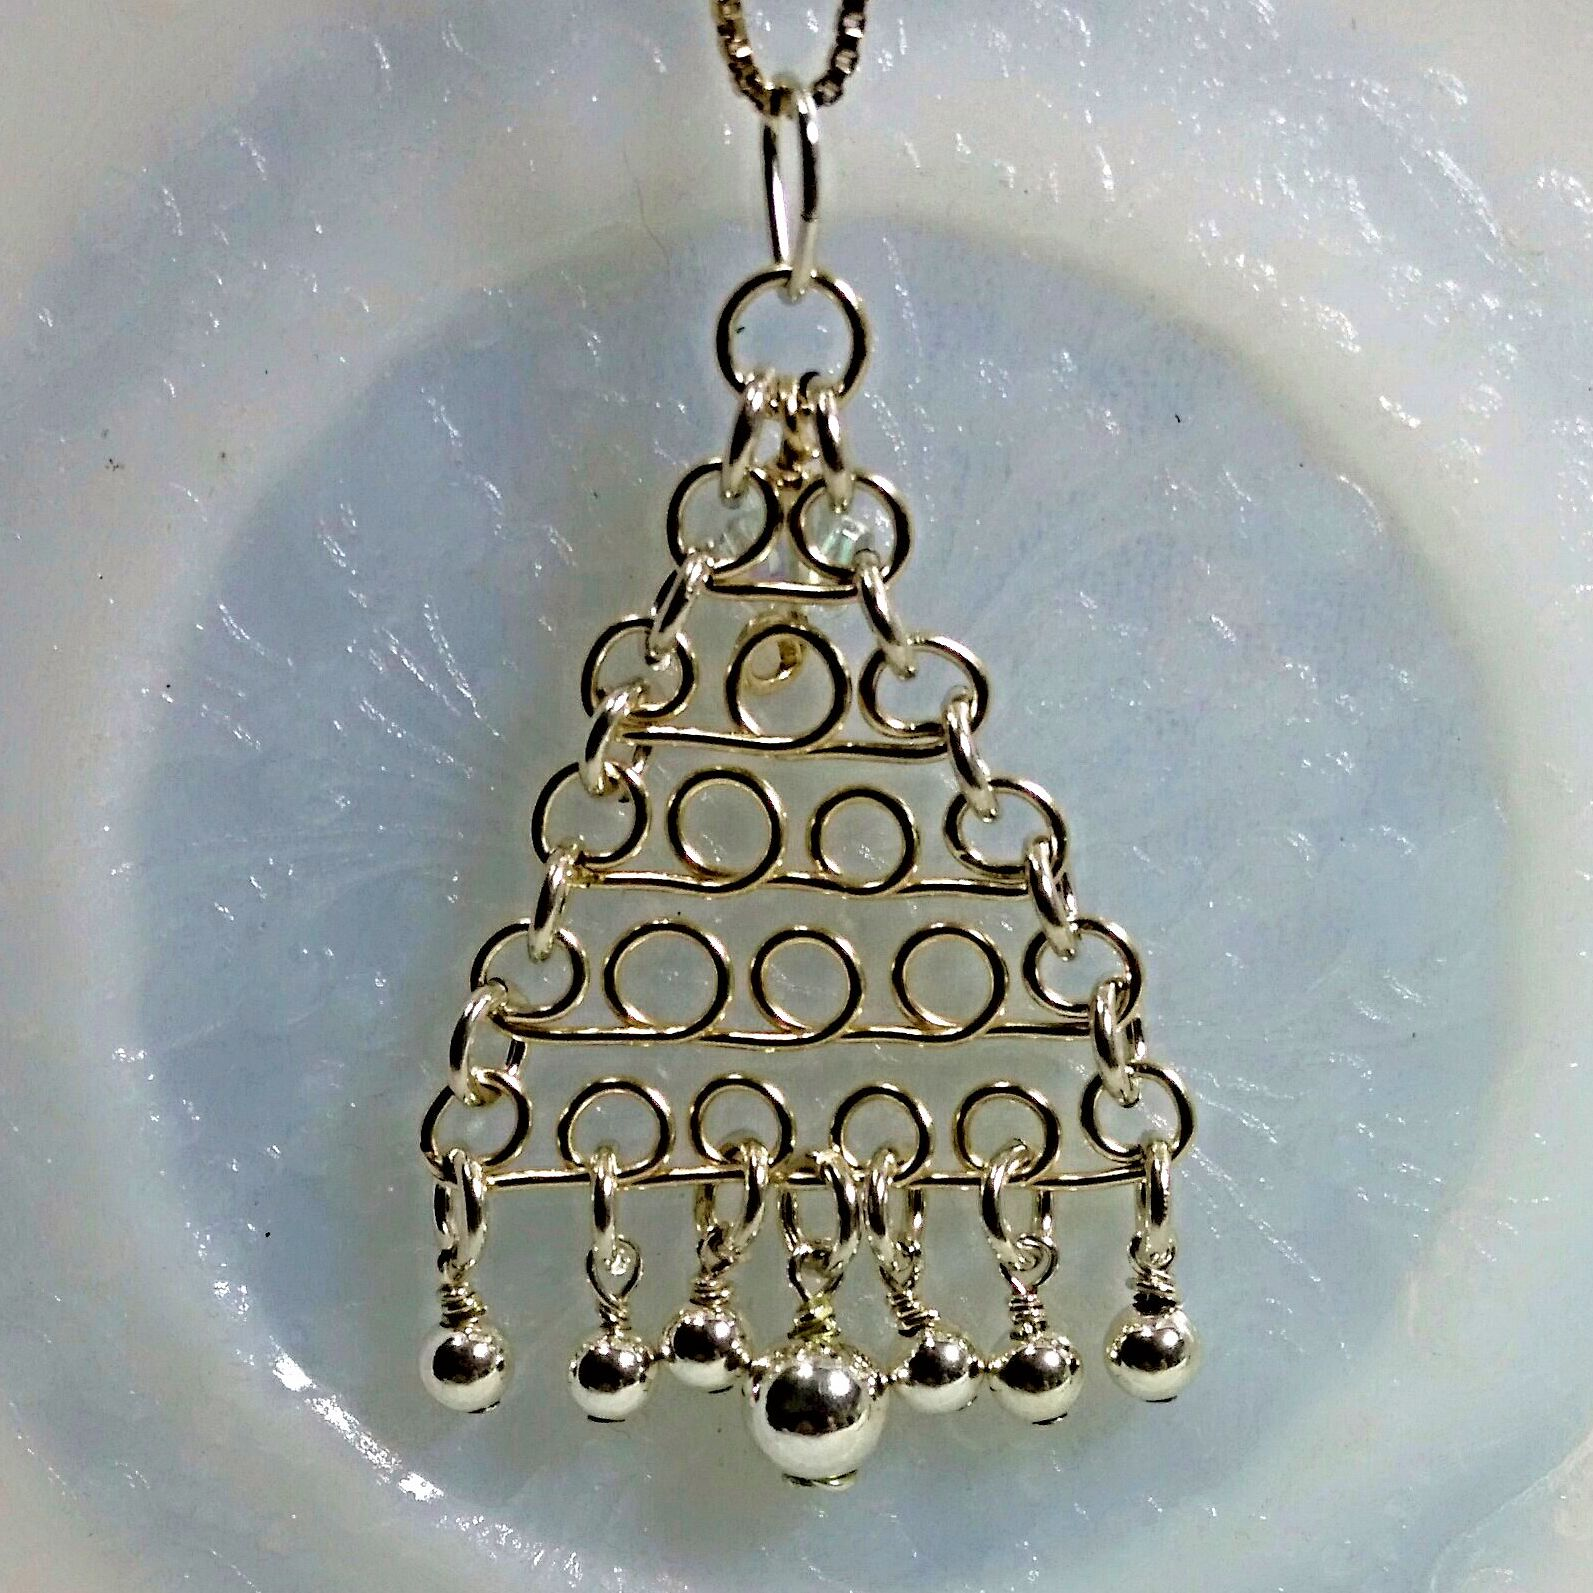 Handmade Wire Formed Christmas Tree in 14/20 Gold Filled Wire and ...